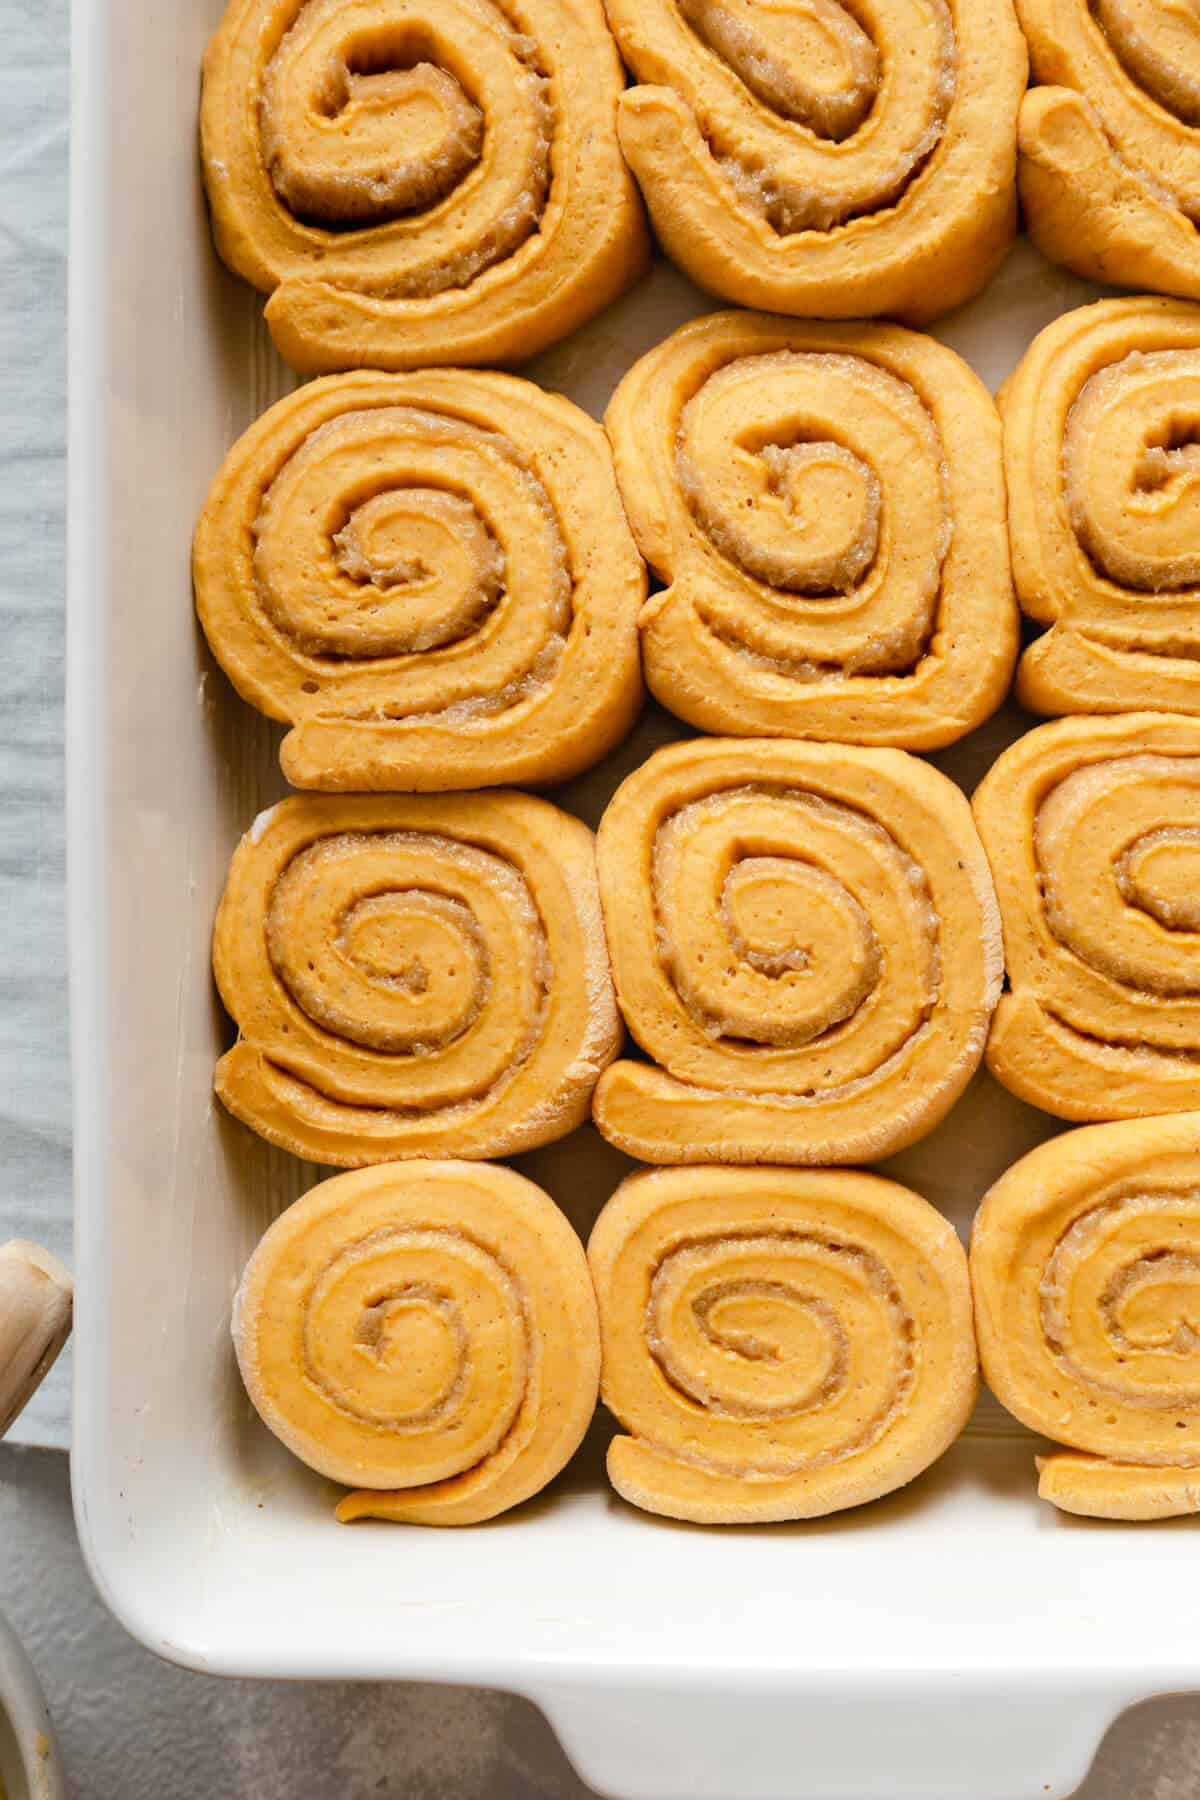 Close-up of pumpkin cinnamon rolls in a baking tray